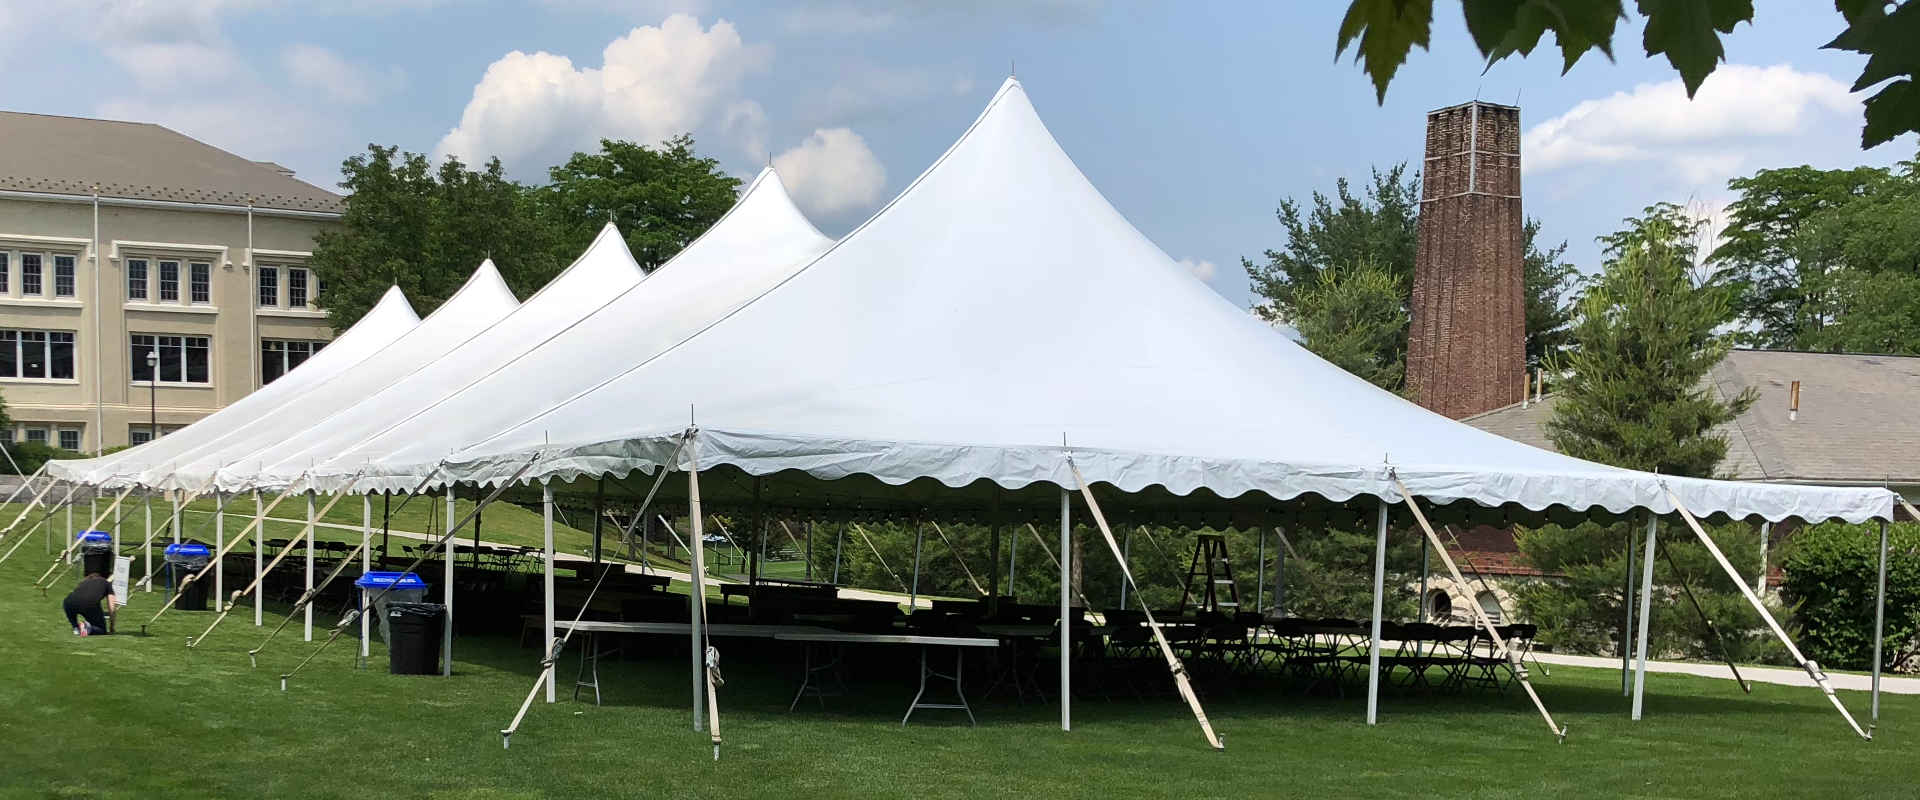 Event Rentals in Western New Jersey and Eastern Pennsylvania